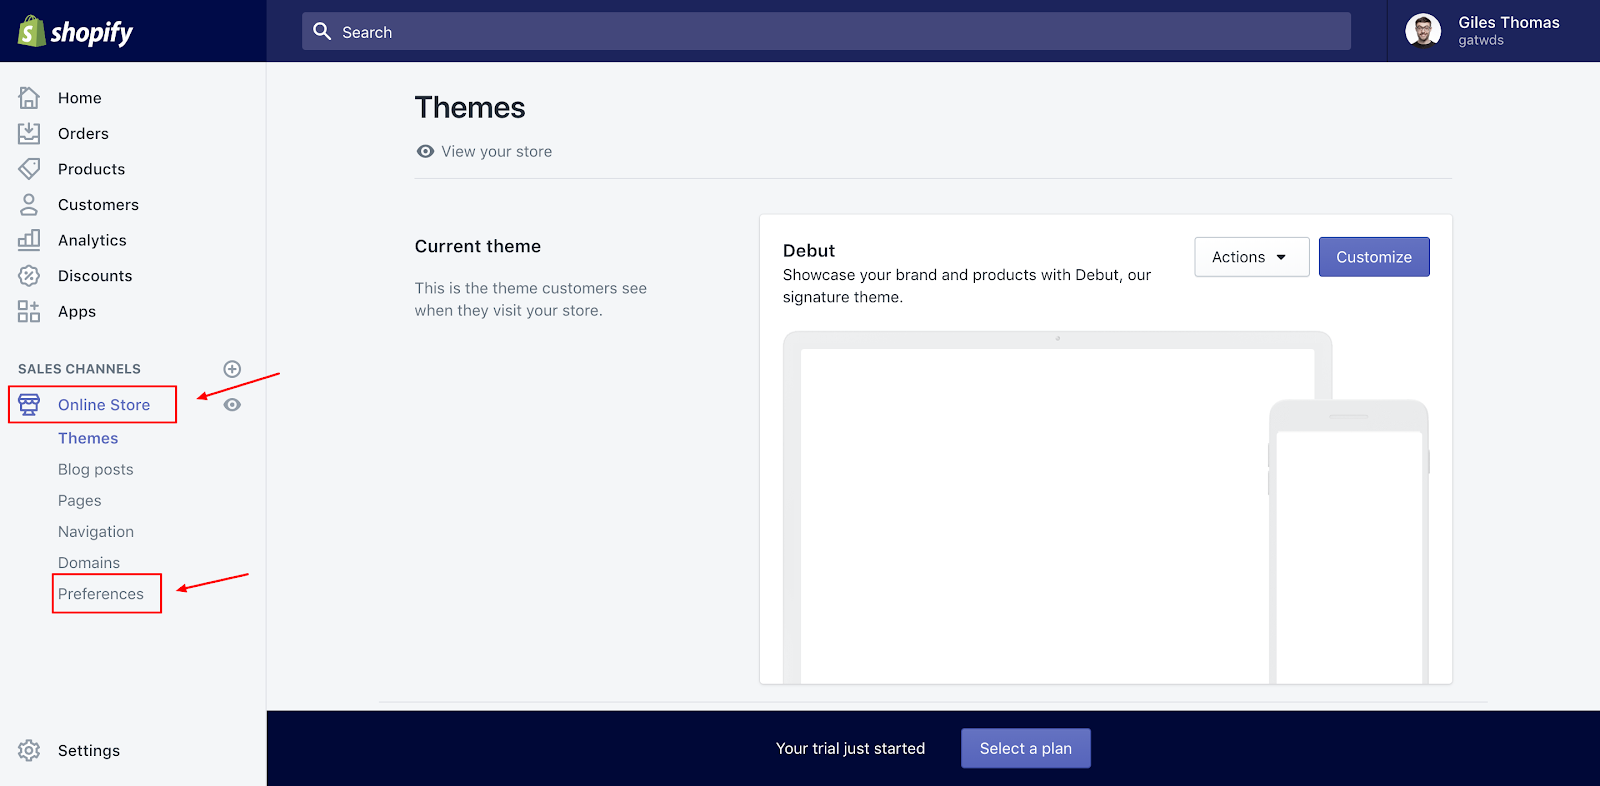 Screenshot showing a page on the Shopify dashboard